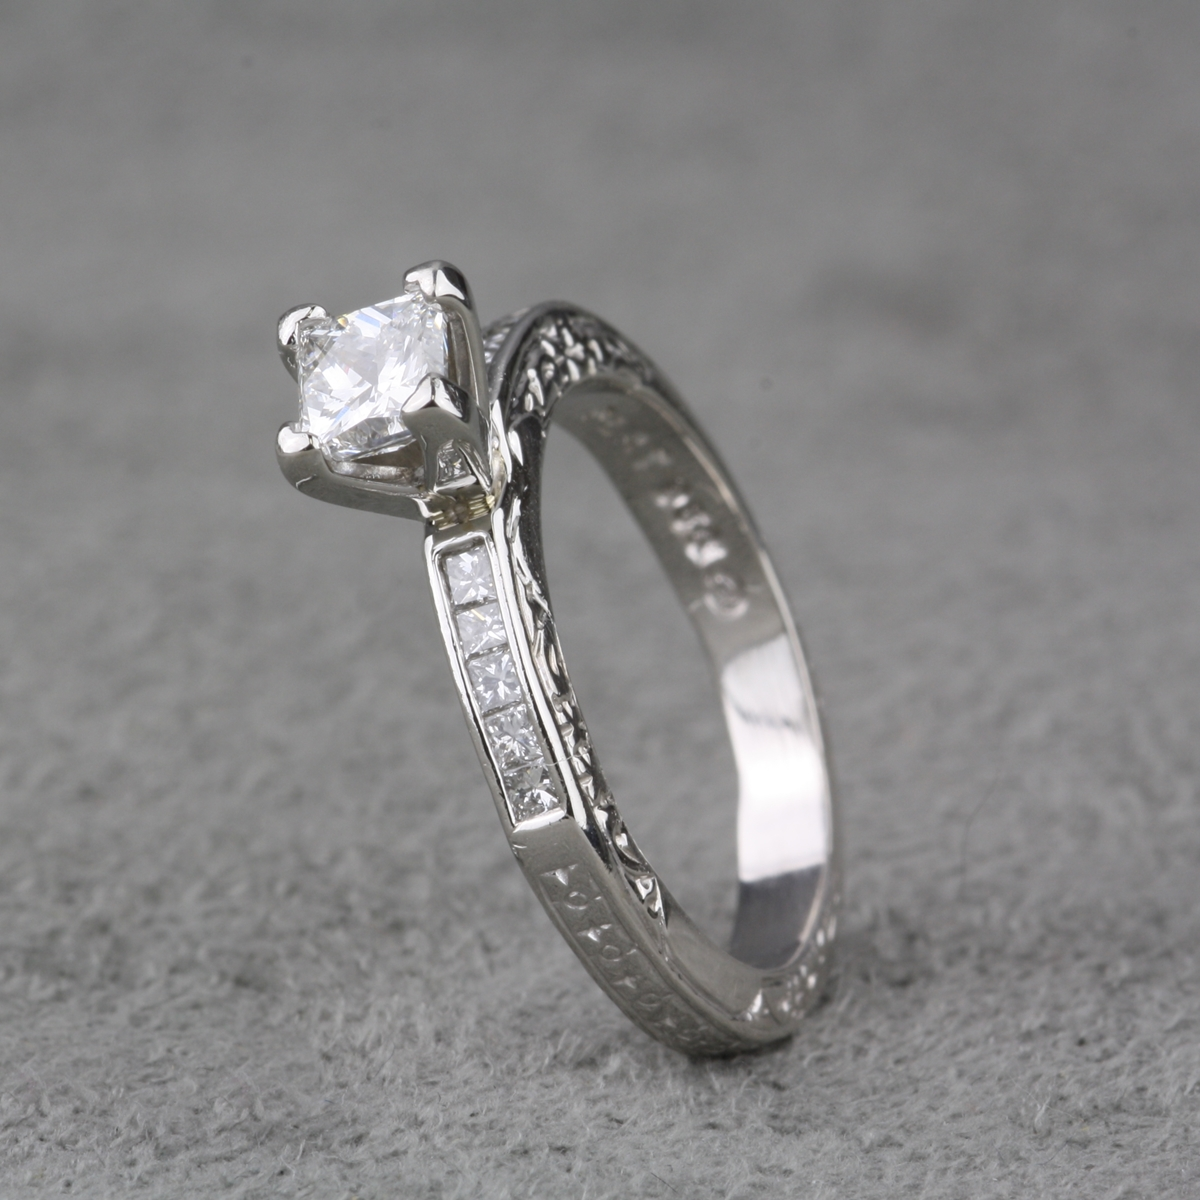 leo zodiac original com by rings ring meandzena product notonthehighstreet zena birthstone me